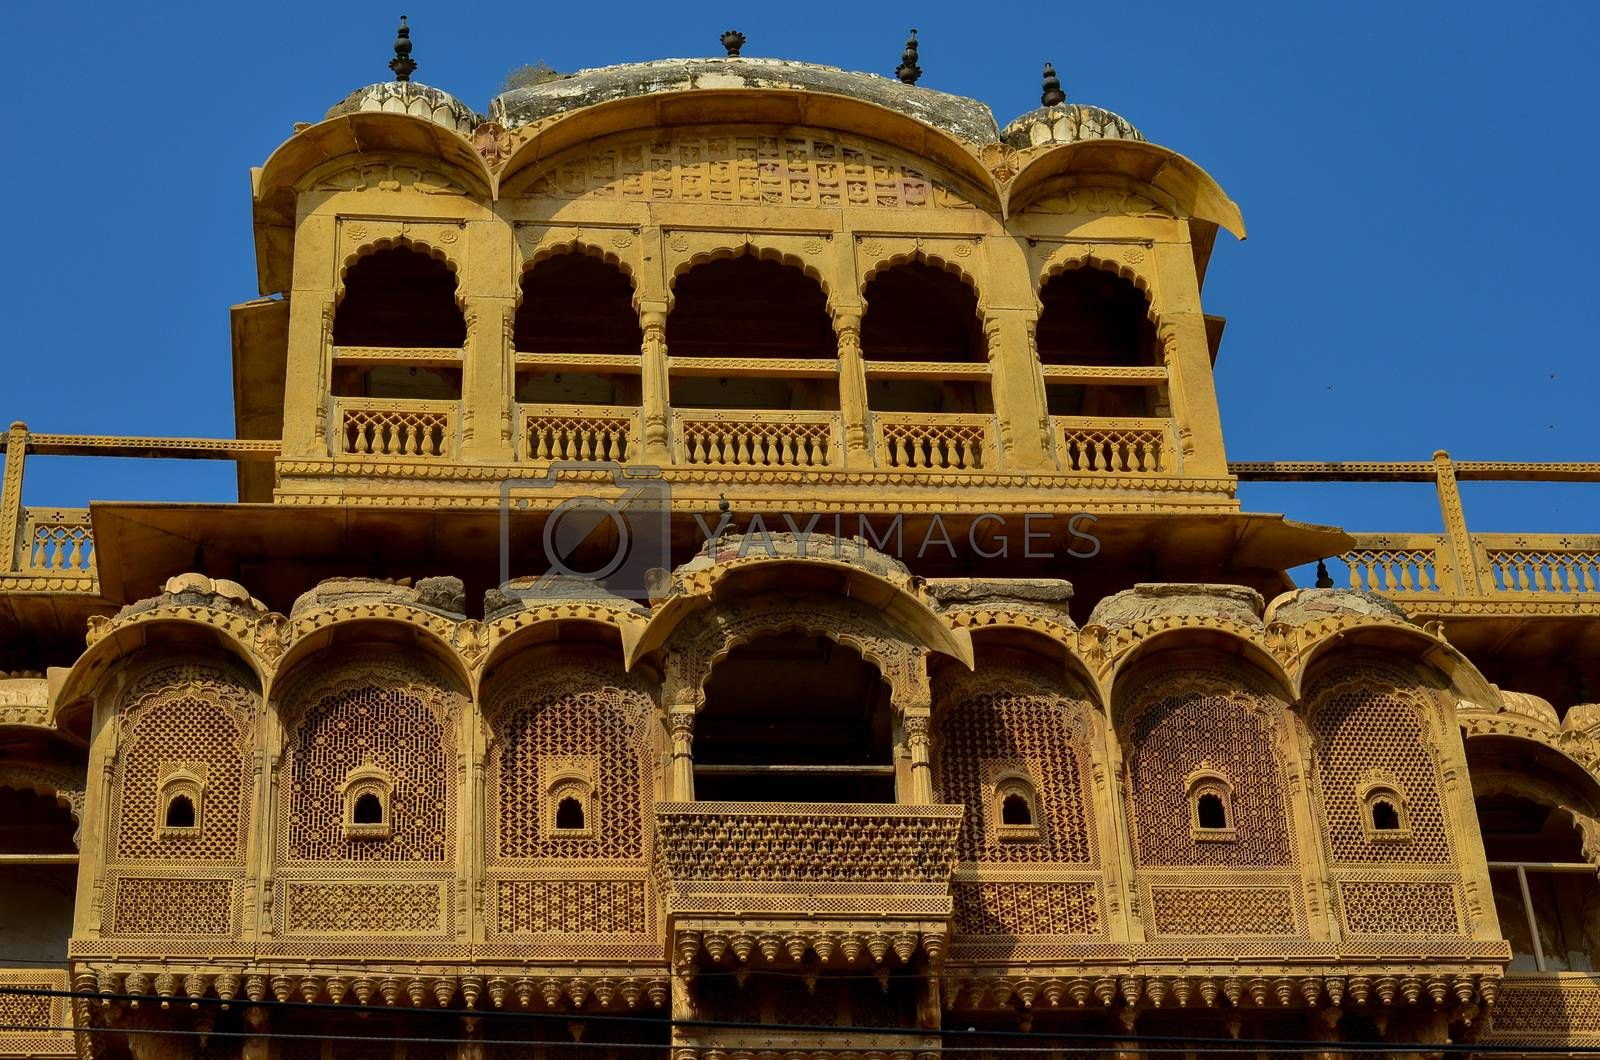 Facade of a traditional Rajasthani haveli with window at Patwon ki haveli in Jaisalmer, Rajasthan, India. Series of early-1800s palaces, now a museum featuring intricate carvings, furniture & artwork